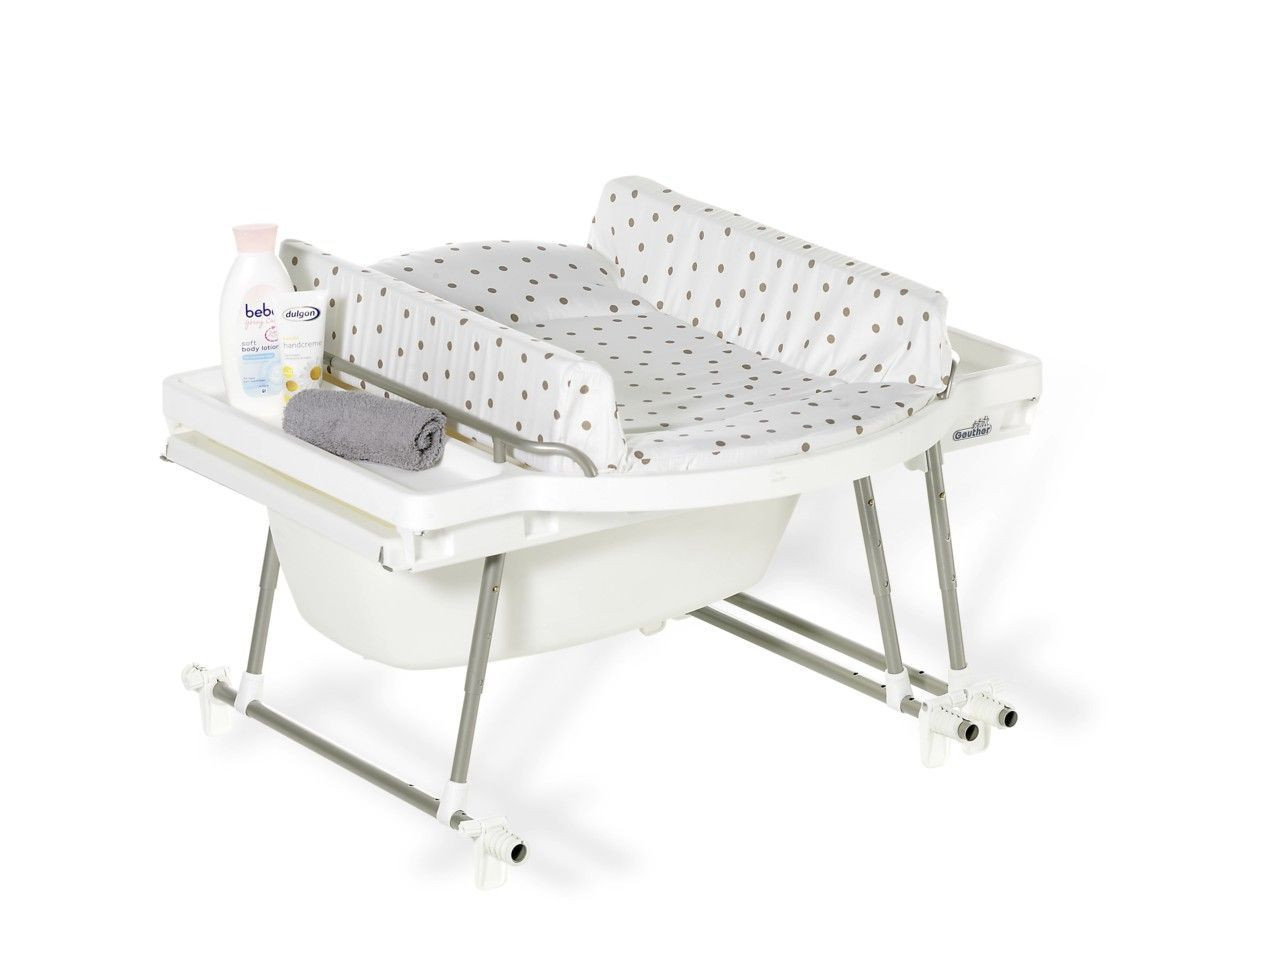 Ensemble baignoire table langer aqualino geuther bambinou - Baignoire bebe table a langer pliante ...